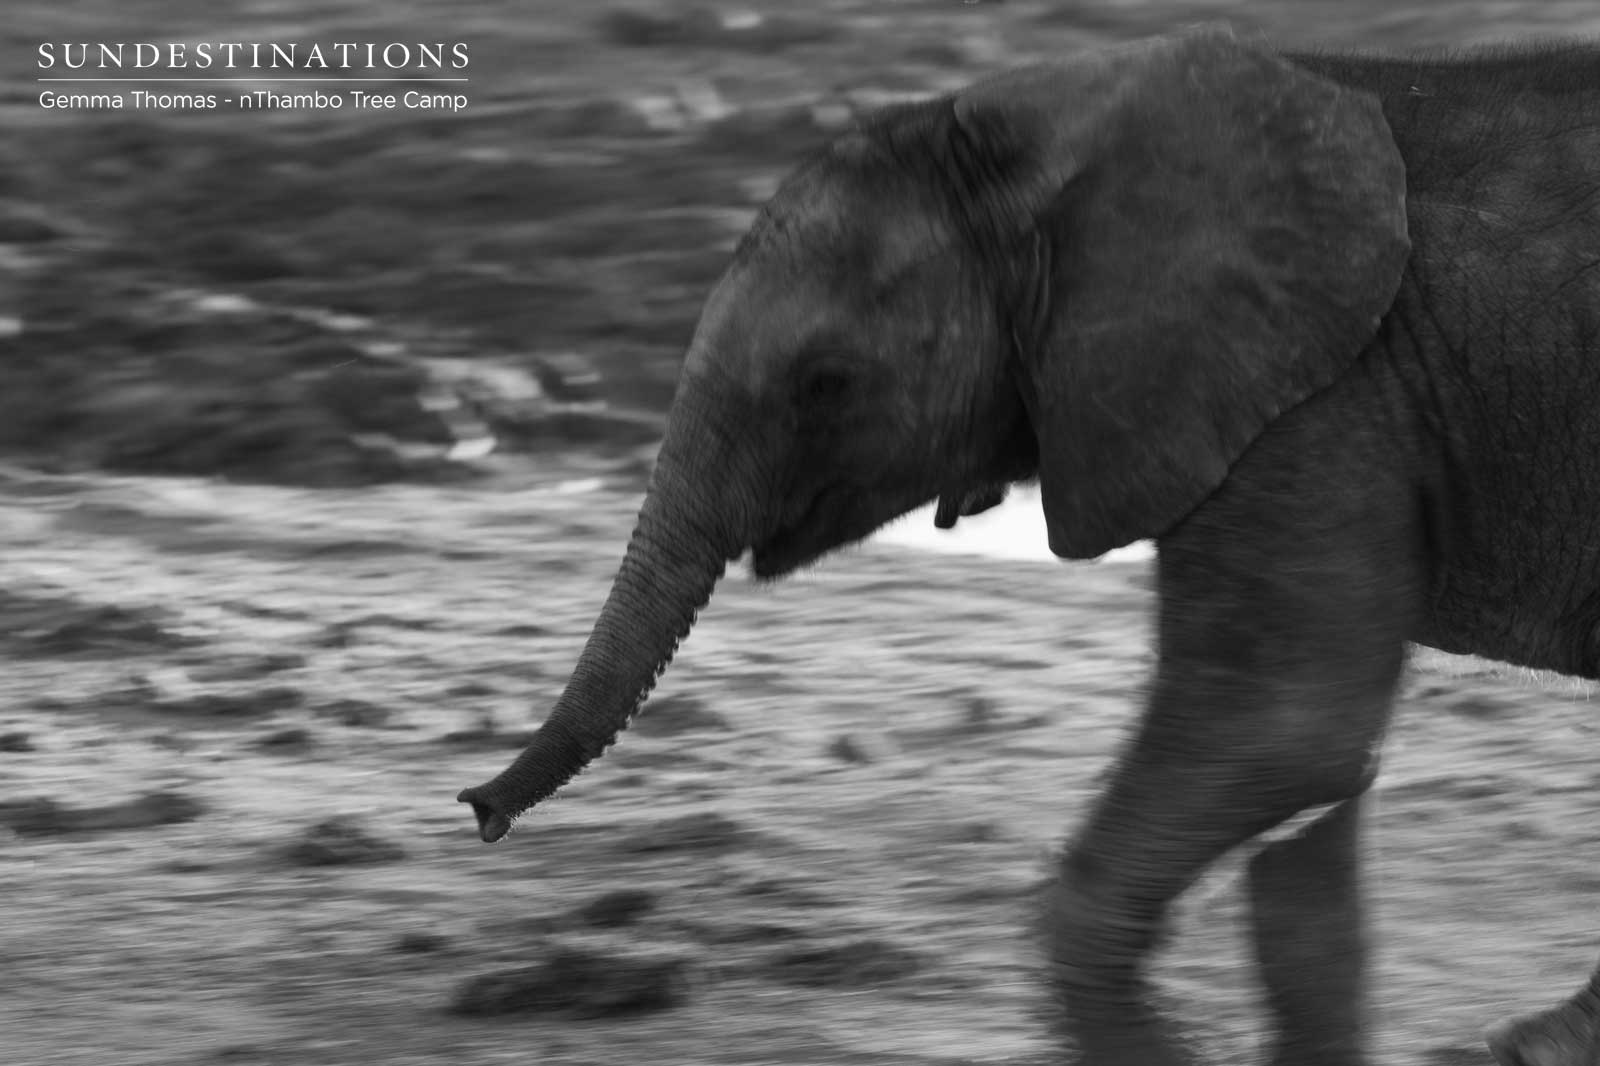 Elephant Calf at nThambo